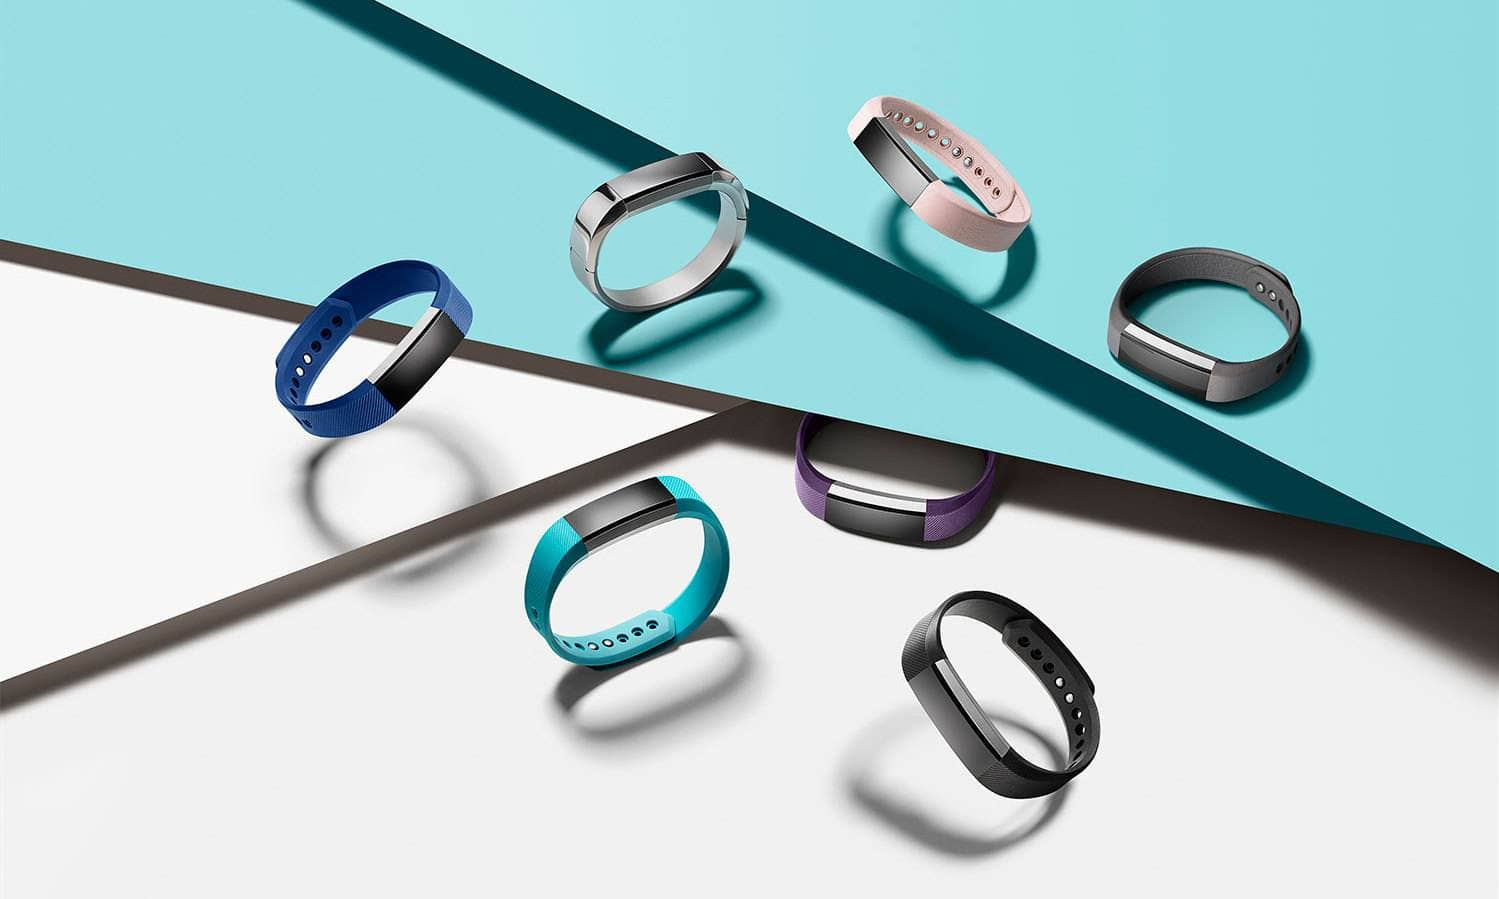 Recommended for the best smart bracelet in 2019